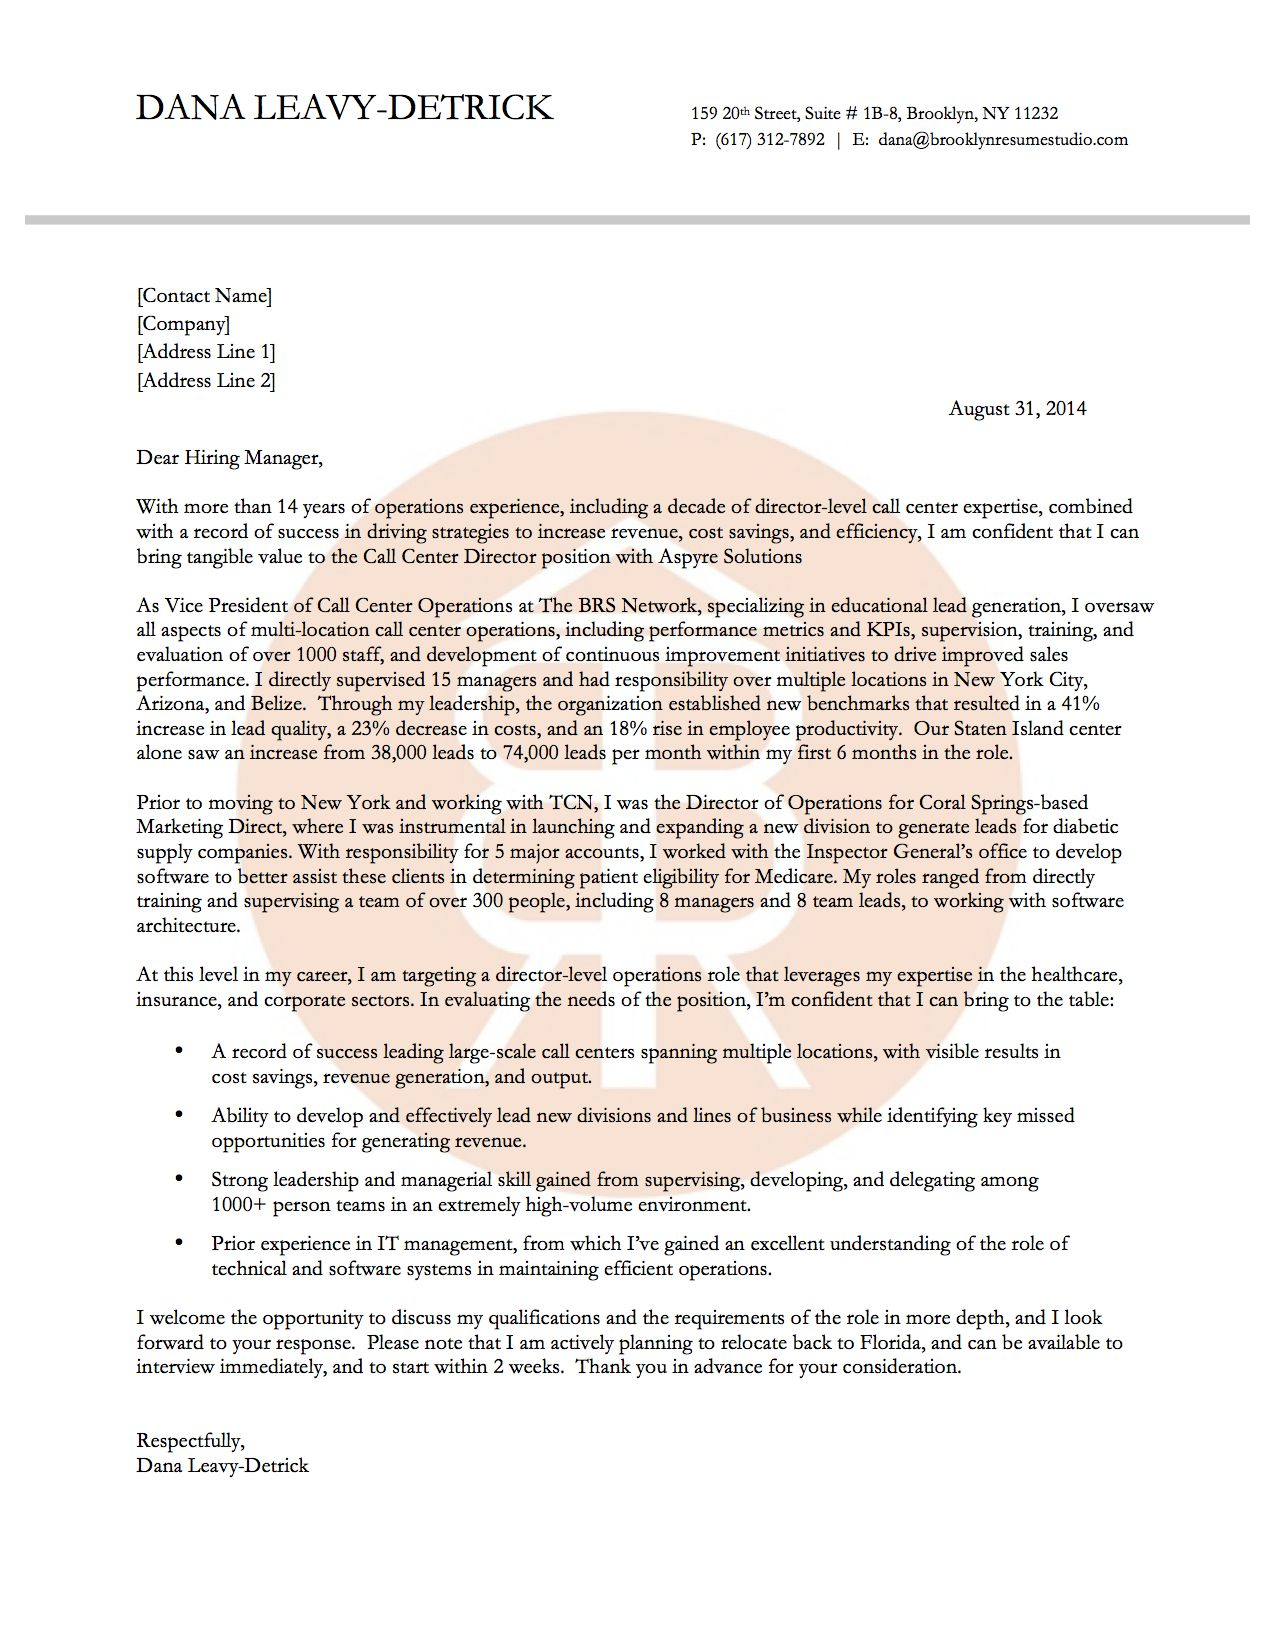 management consulting cover letter examples gallery of ideas of